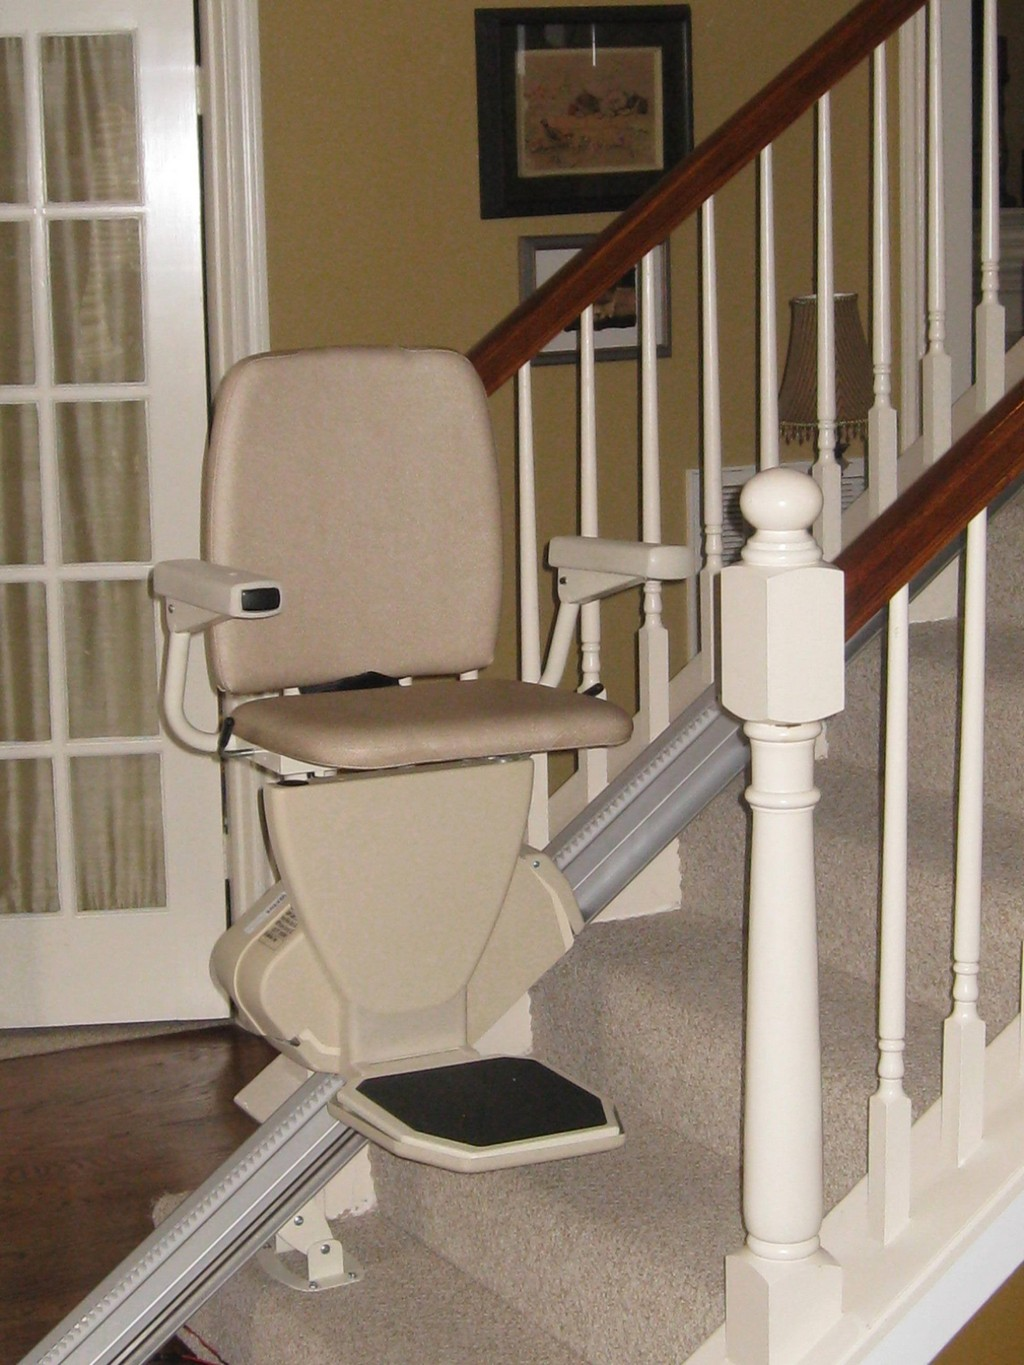 quick products of lift chair for stairs covered by medicare for 2015